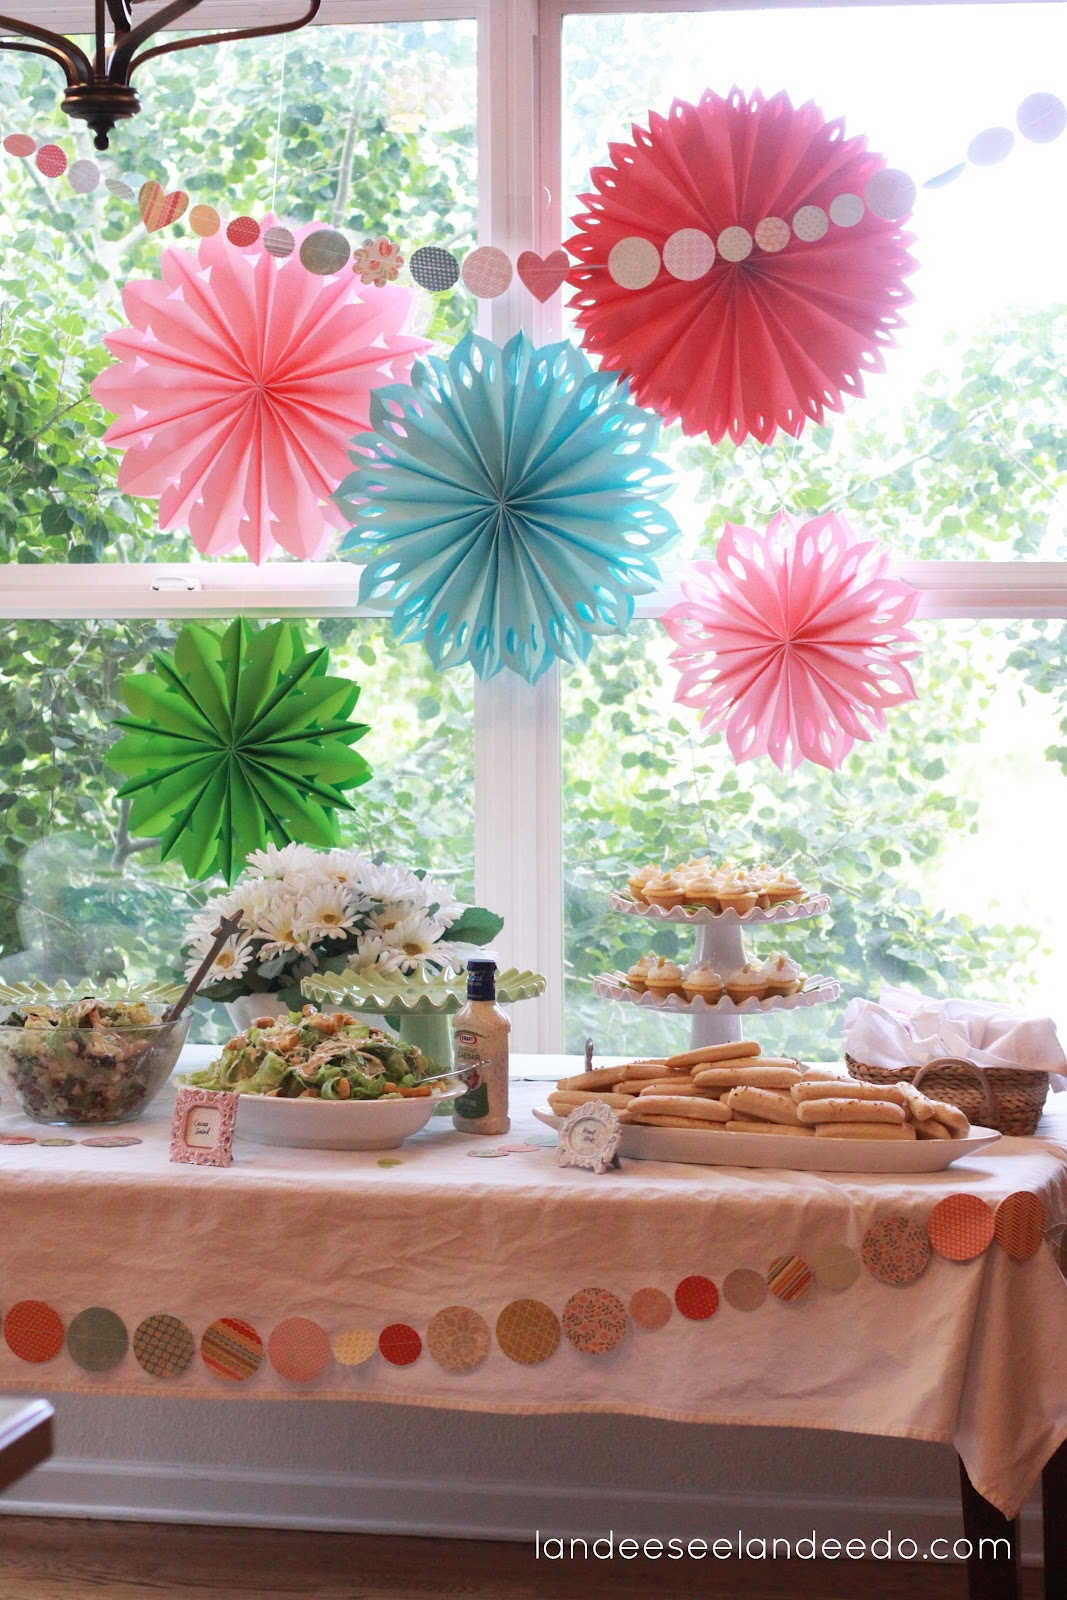 Wedding shower decorations - Wedding bridal shower ...